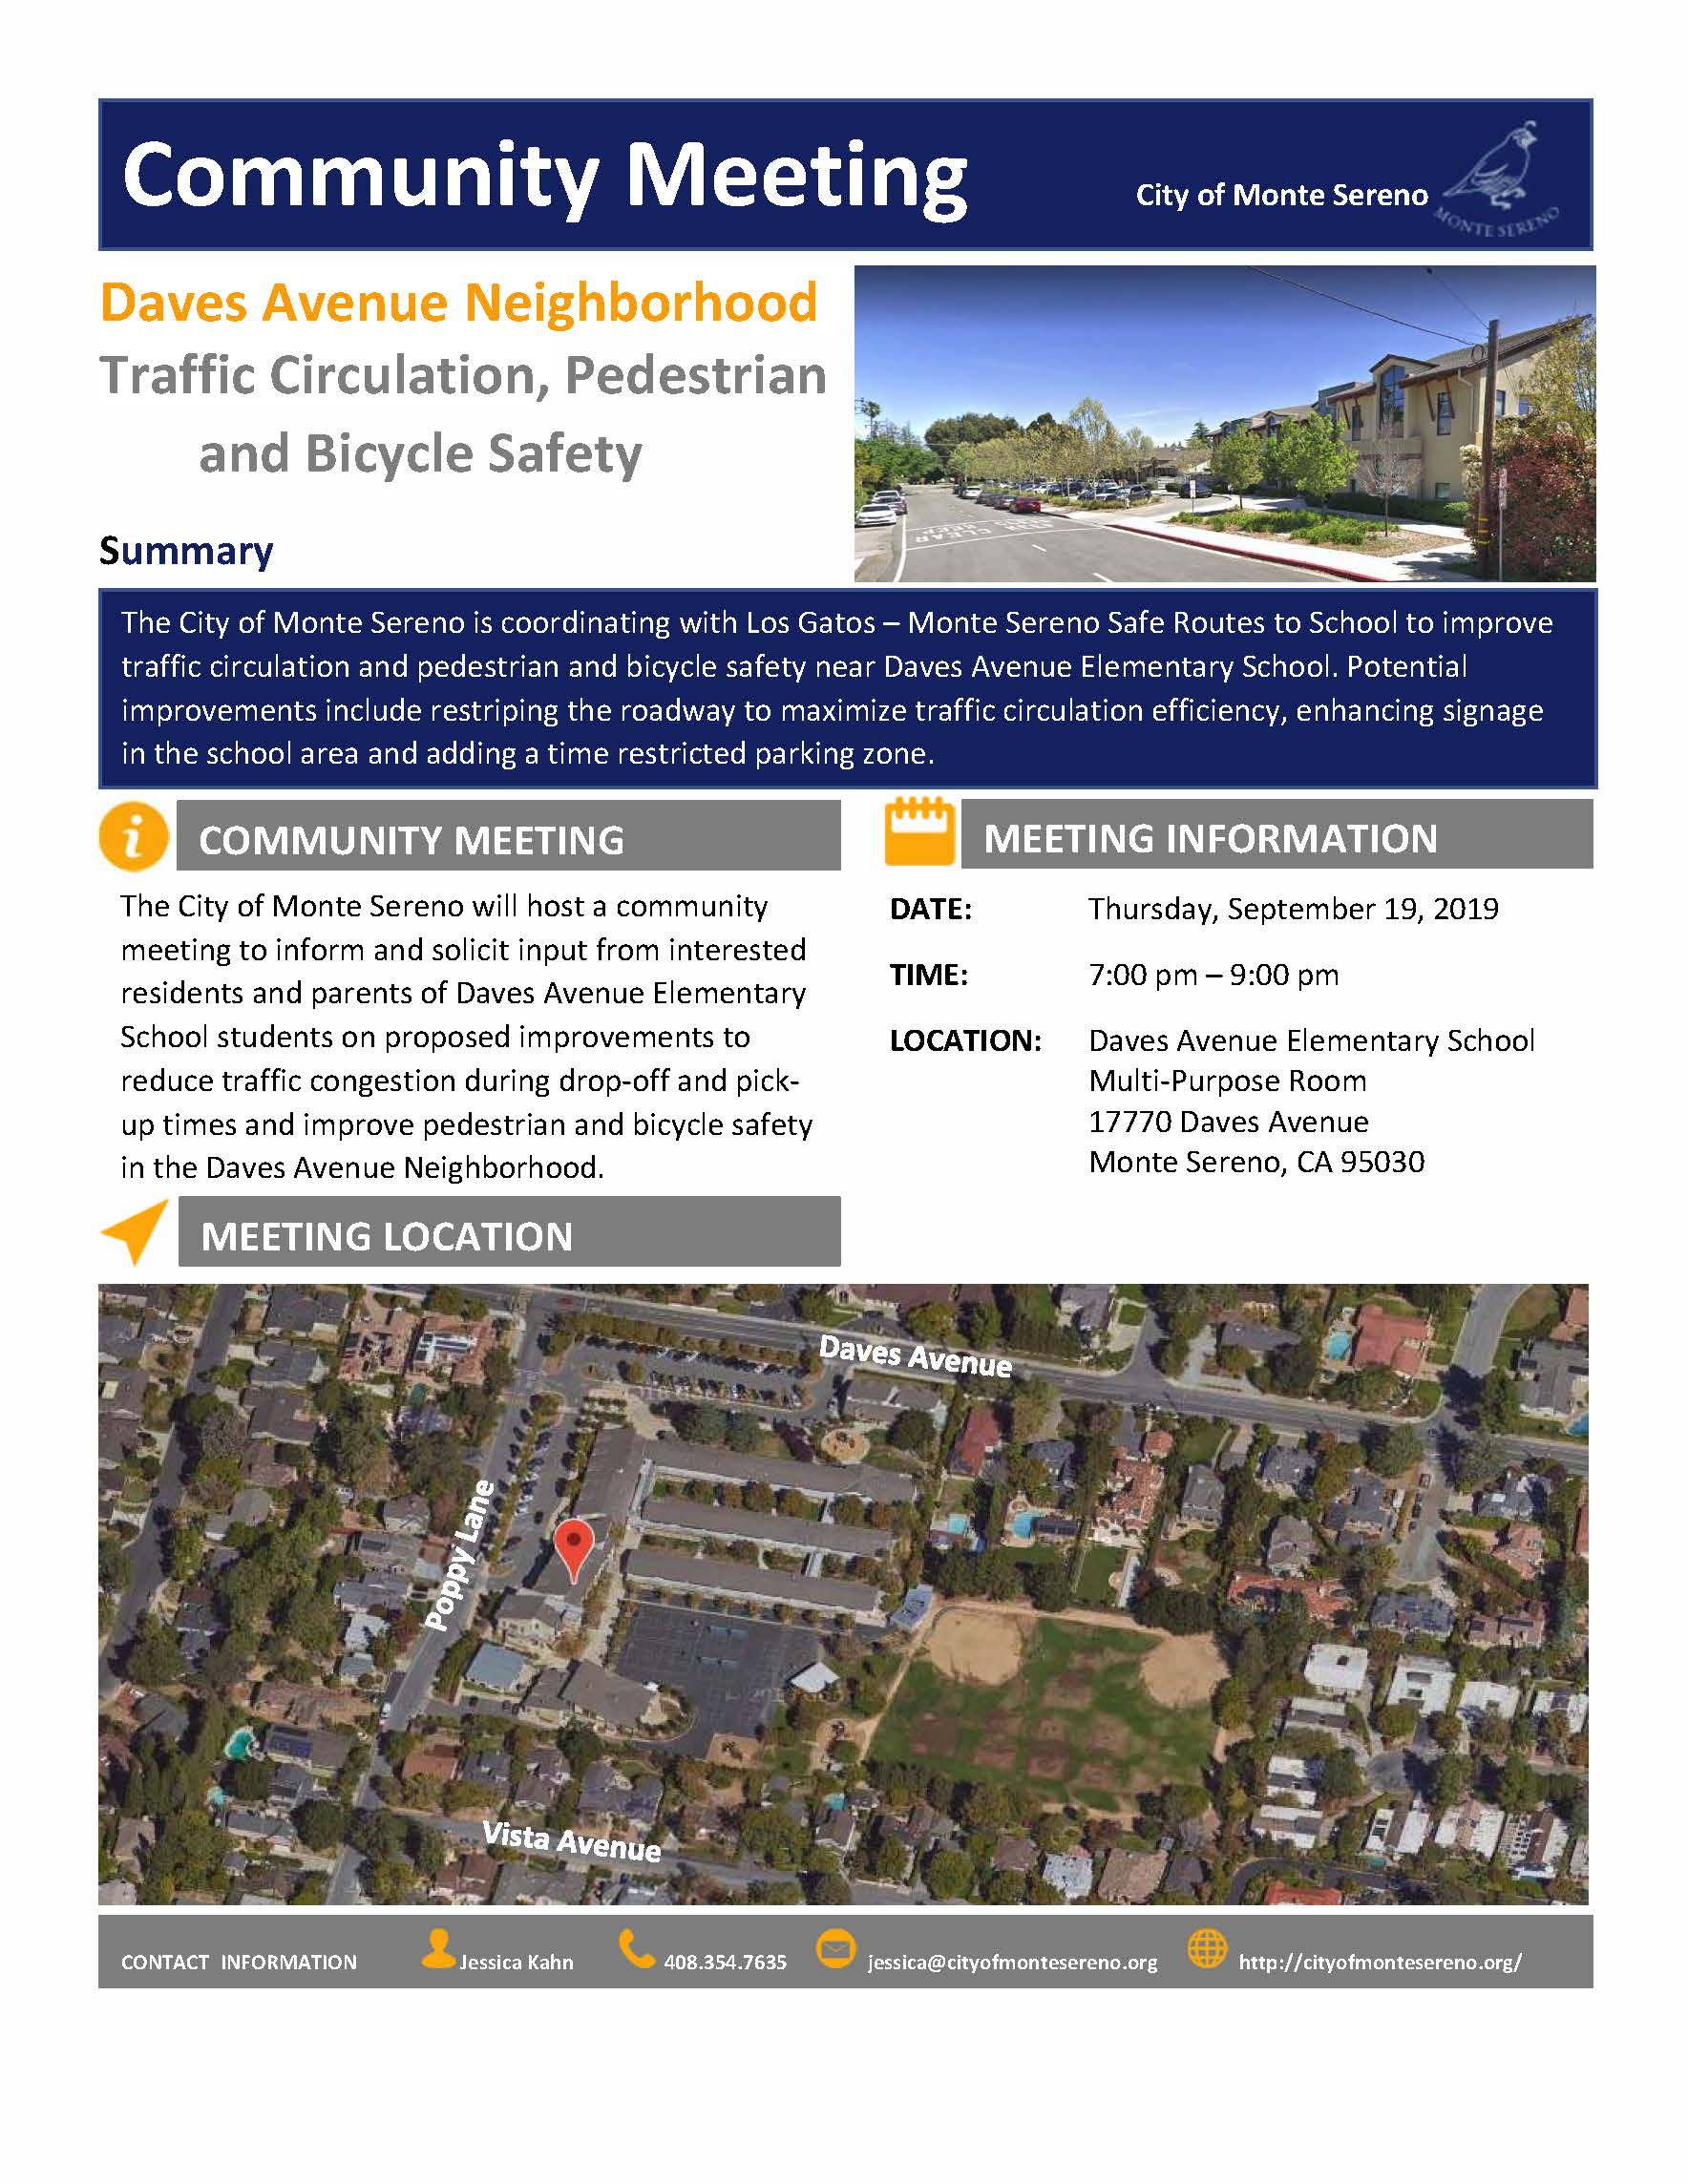 Daves Avenue Elementary flyer